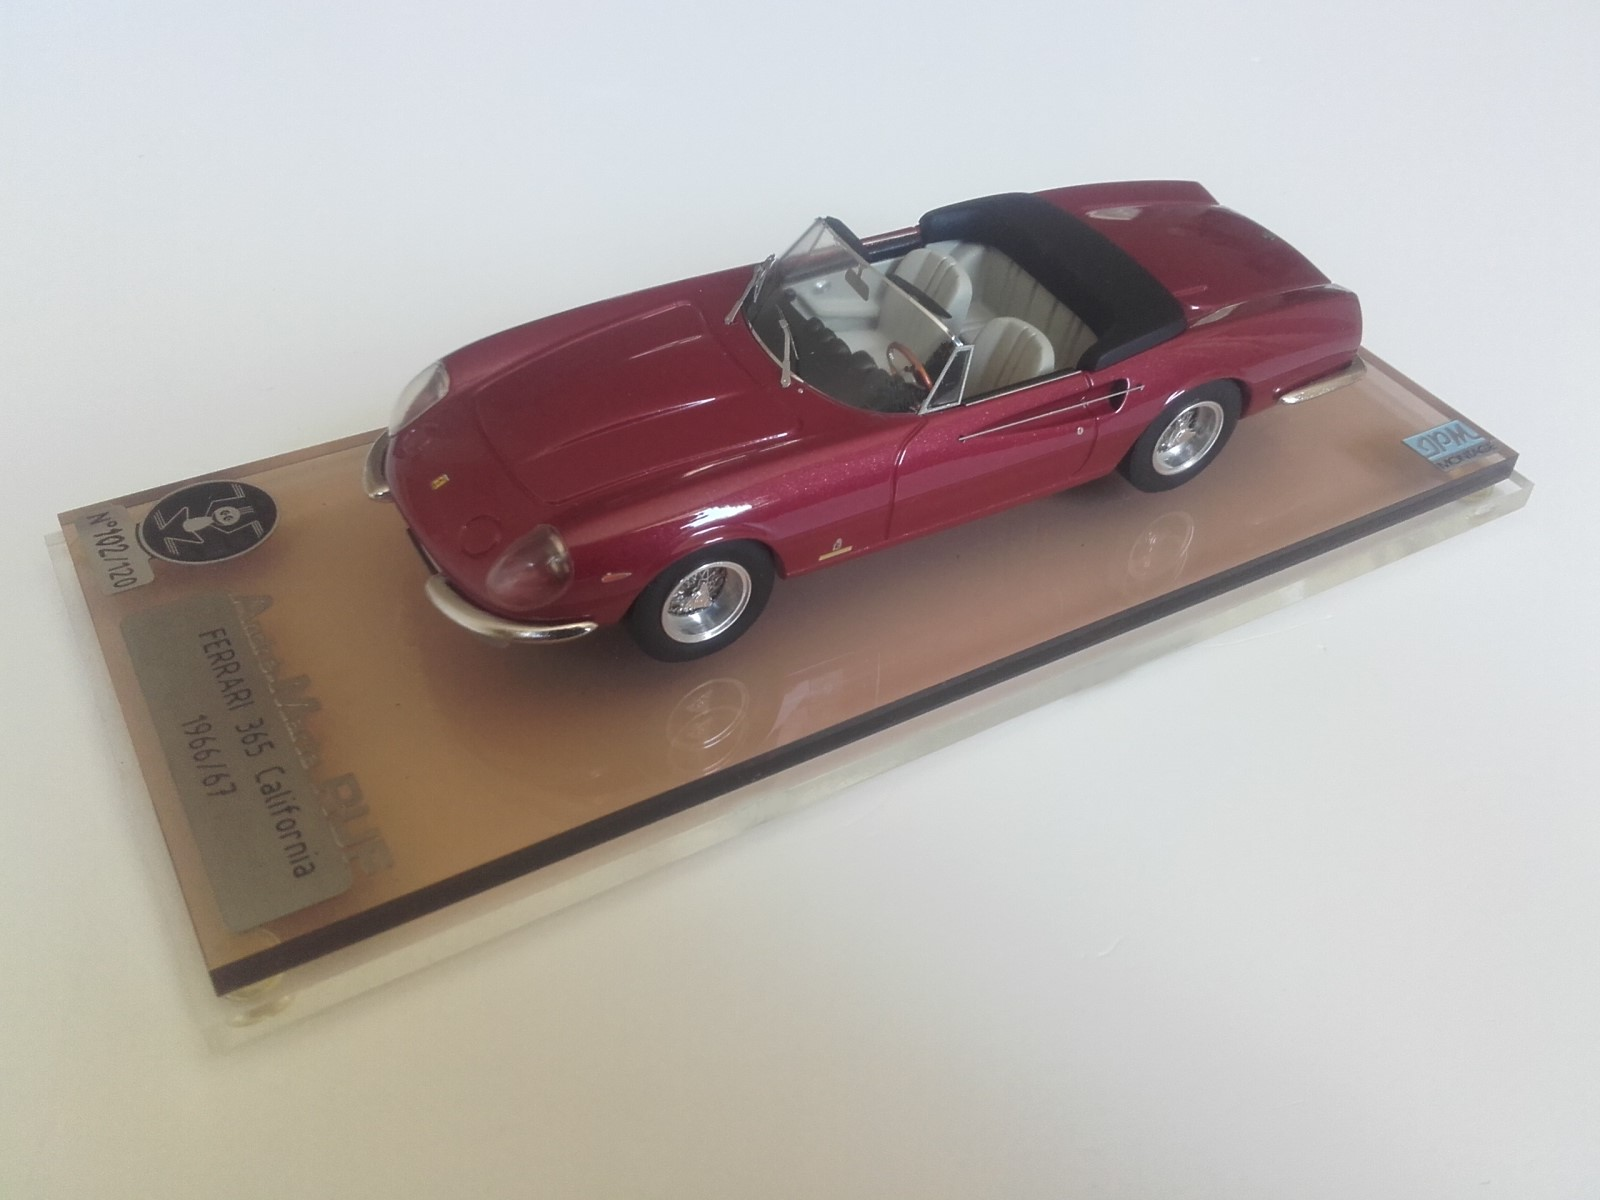 AM Ruf : Ferrari 365 california rubino